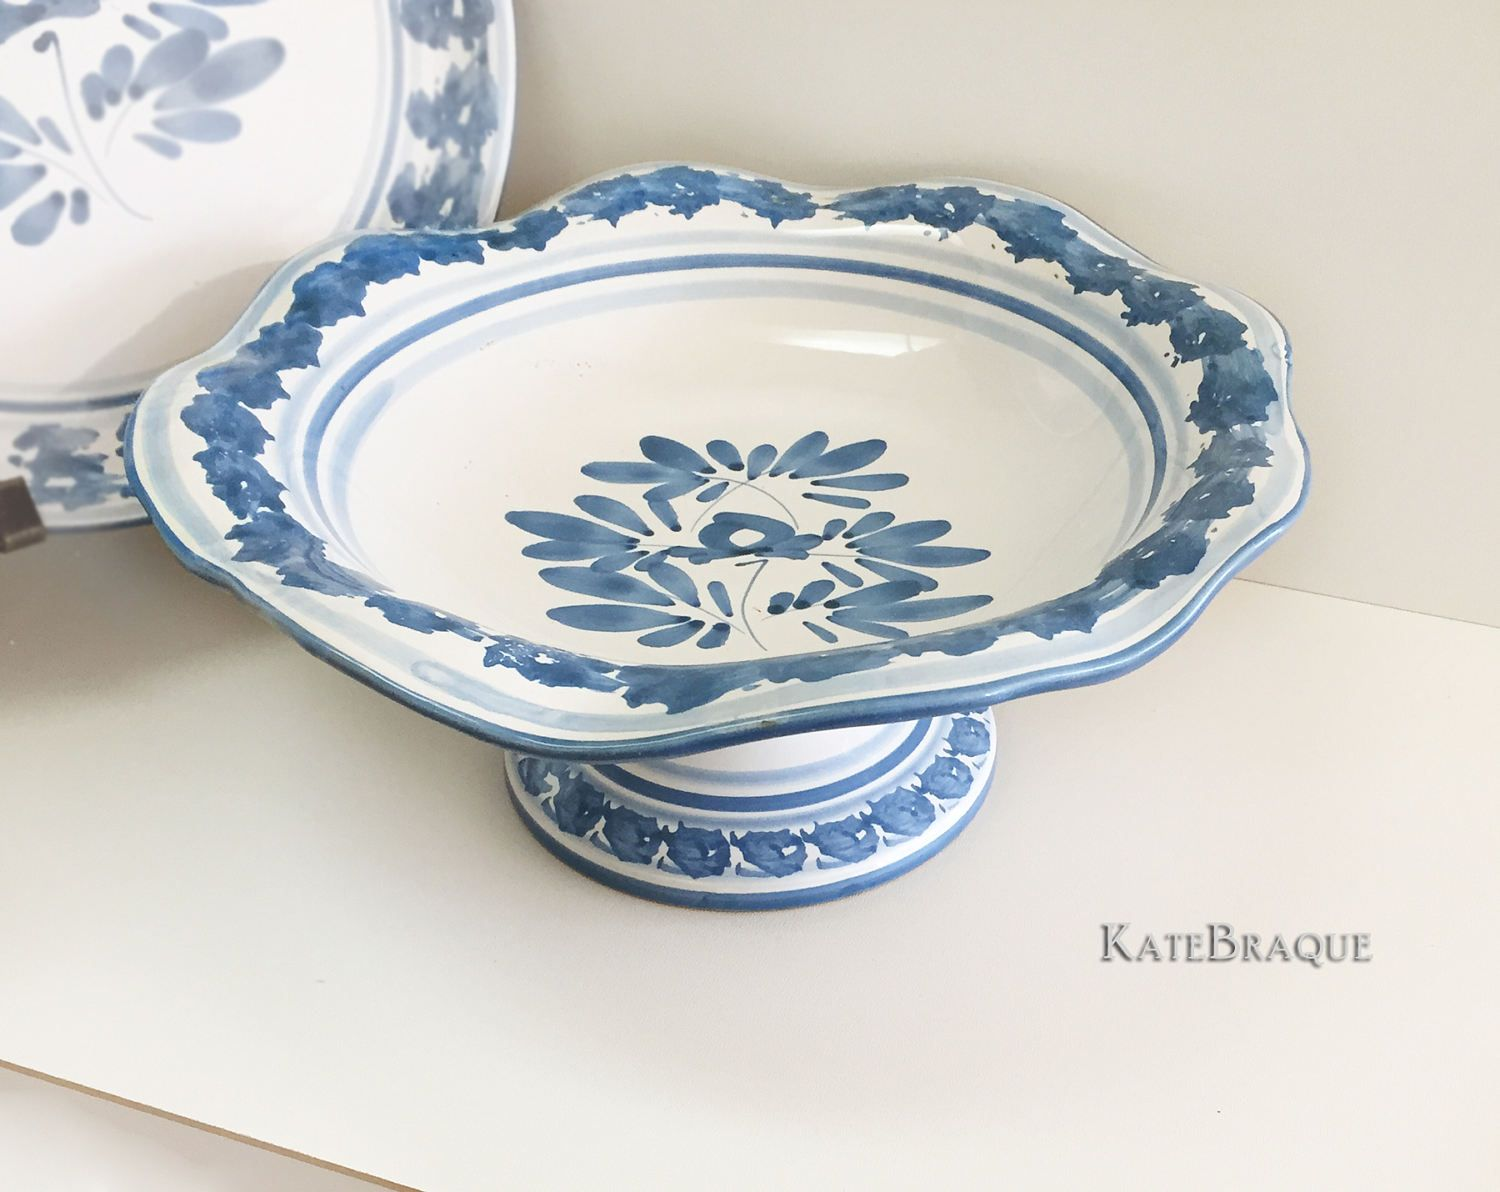 Caltagirone Art Pottery Italy Blue Olive Pattern Ceramic Fruit Bowl by KateBraque on Etsy  sc 1 st  Pinterest & Caltagirone Art Pottery Italy Blue Olive Pattern Ceramic Fruit Bowl ...